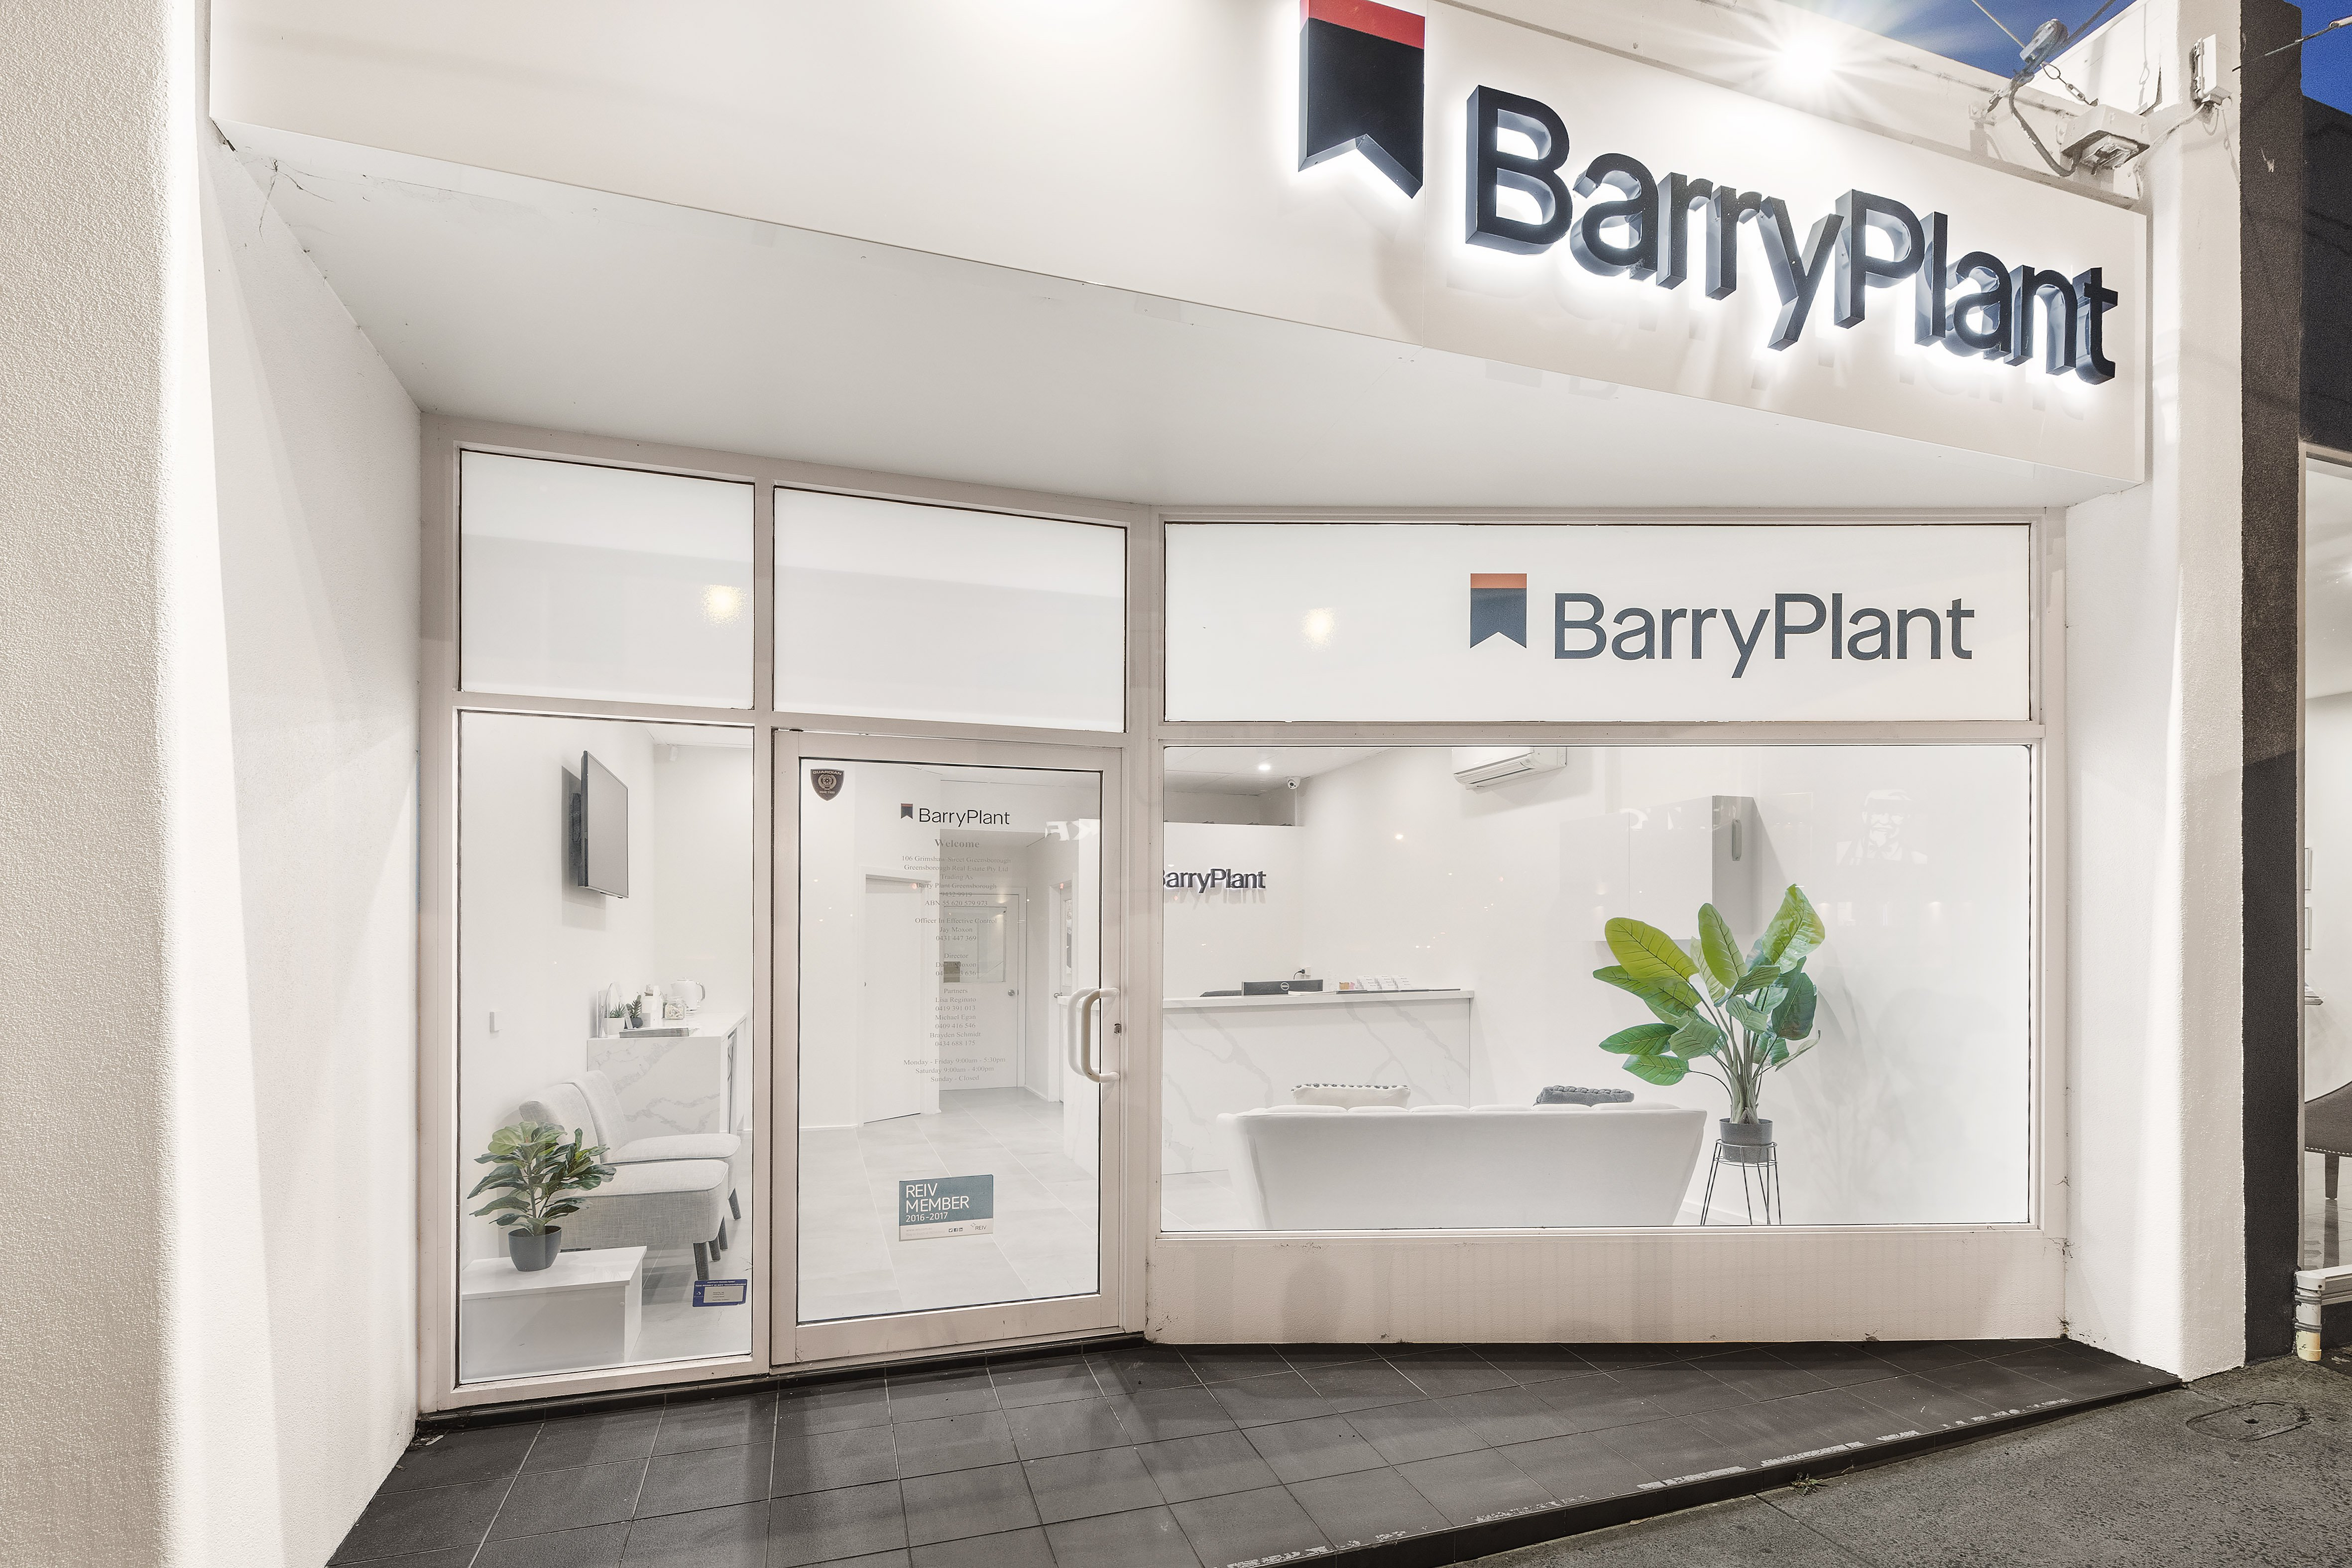 Barry Plant opens 5 new offices